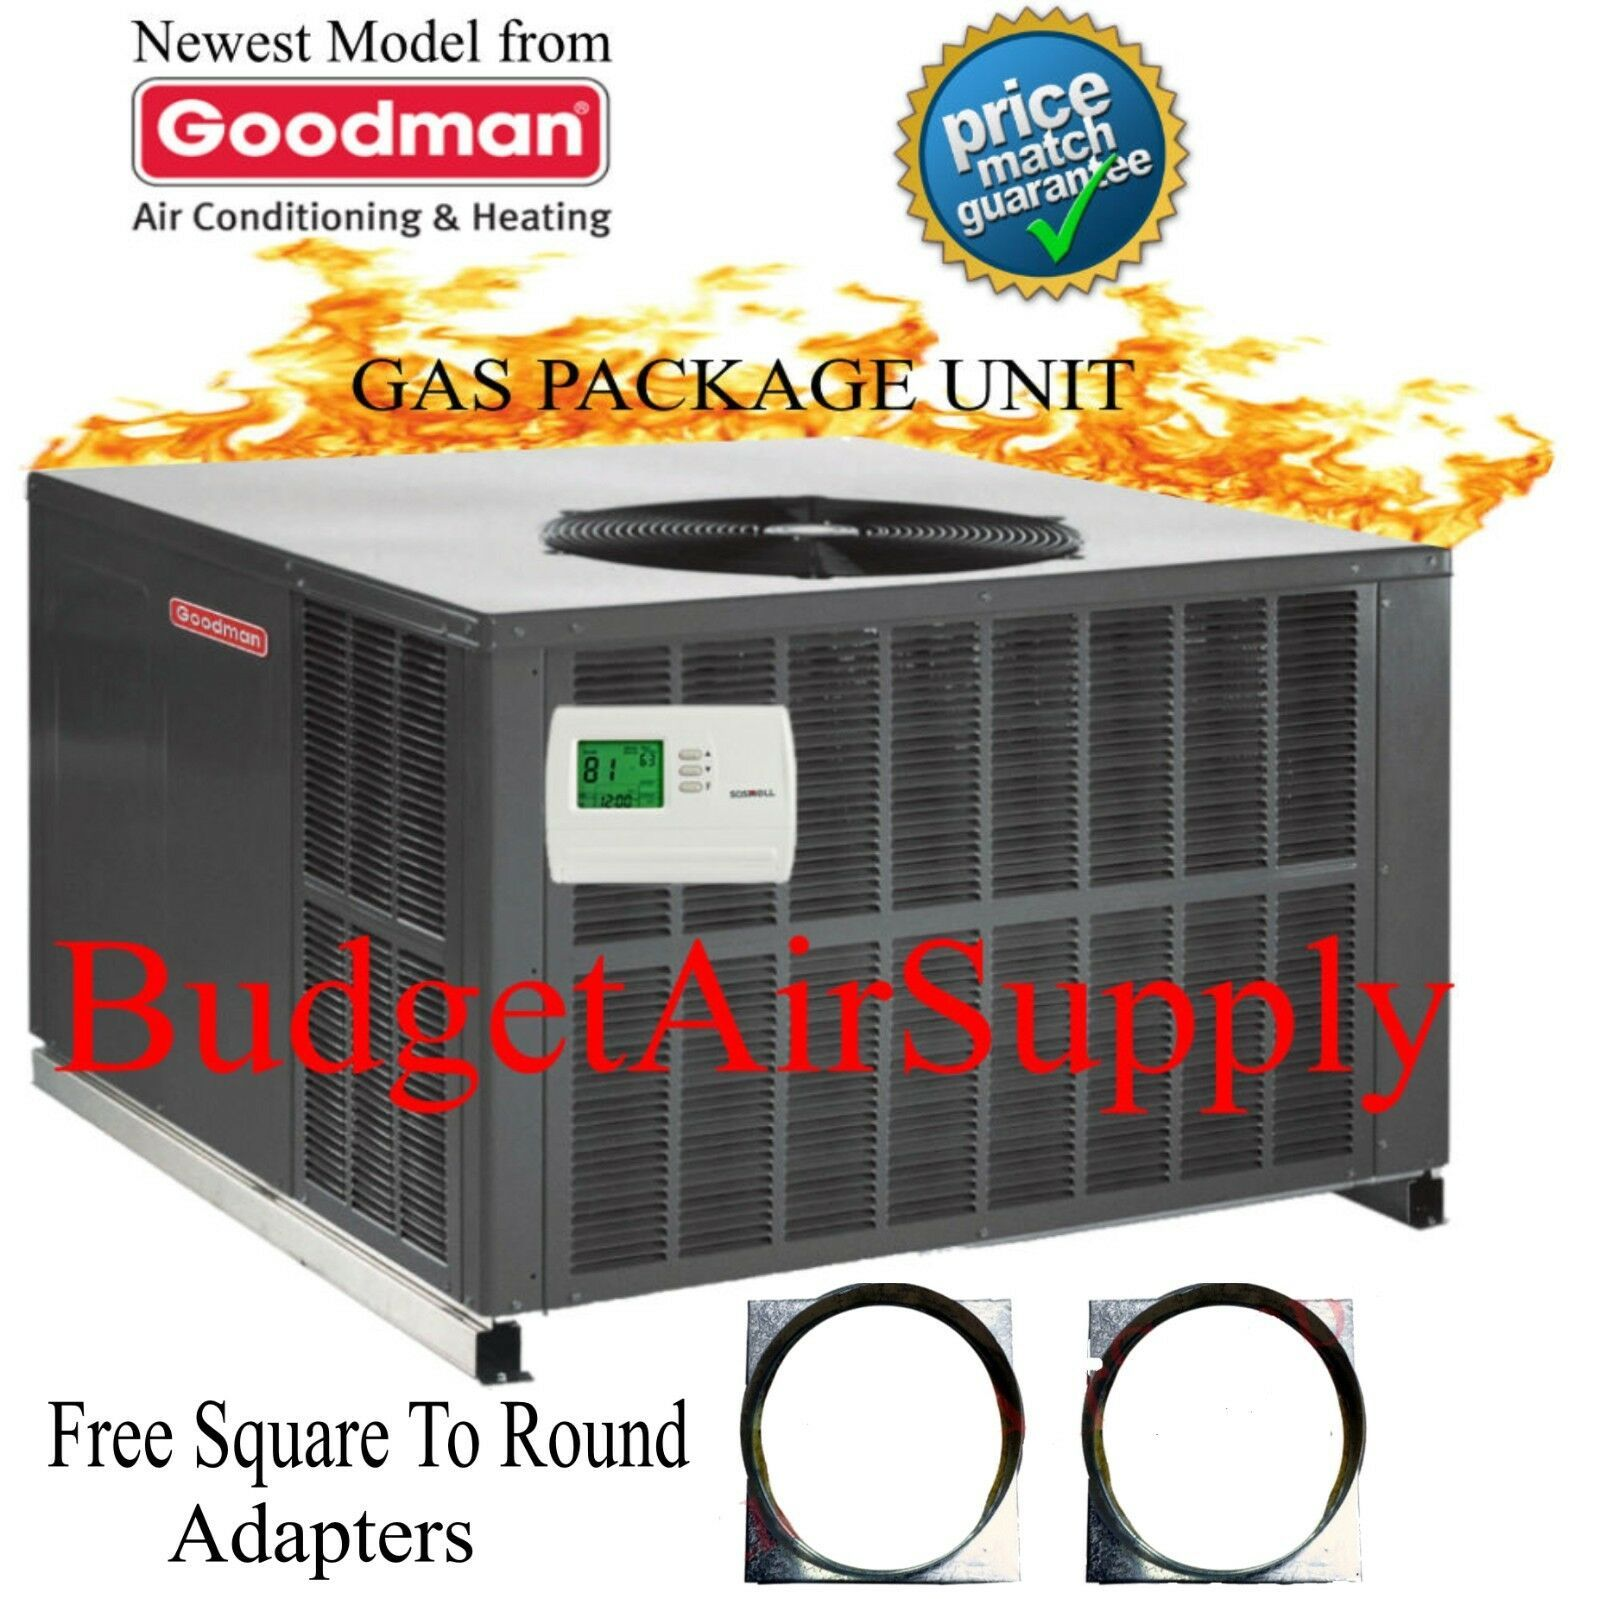 Gas Package Unit The Unit Packaging New Model